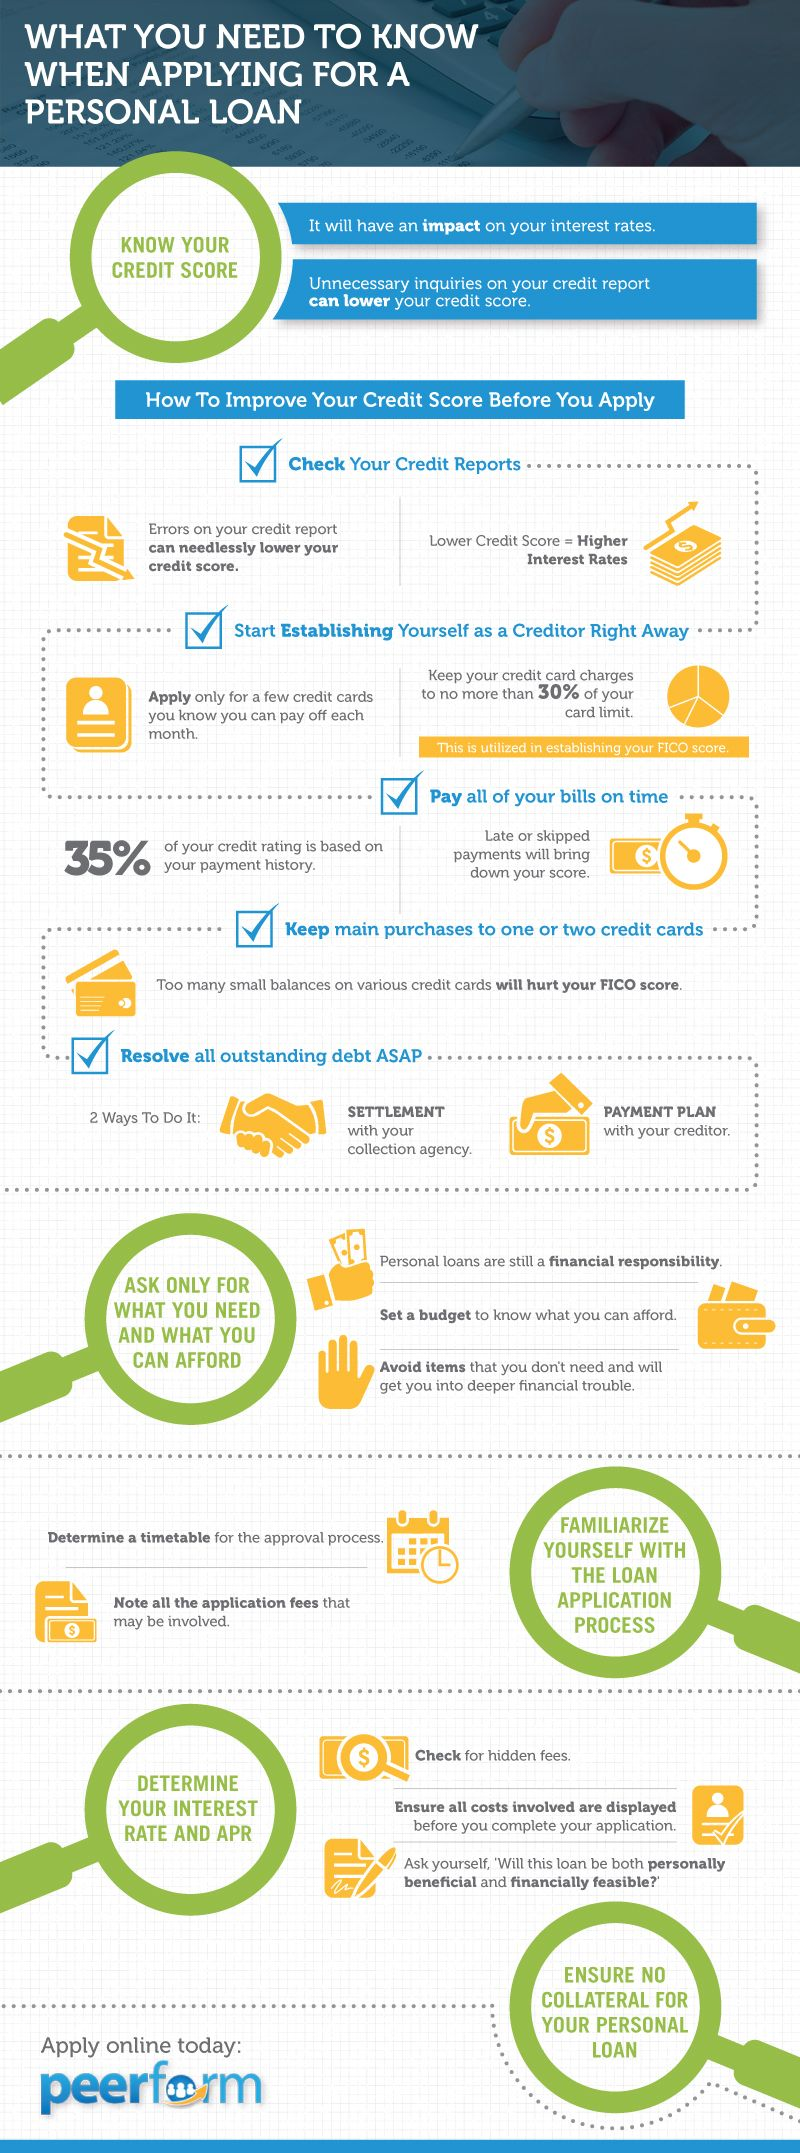 What You Need To Know When Applying For A Personal Loan Infographic Peerform Peer To Peer Lending Blog Personal Loans How To Apply Peer To Peer Lending